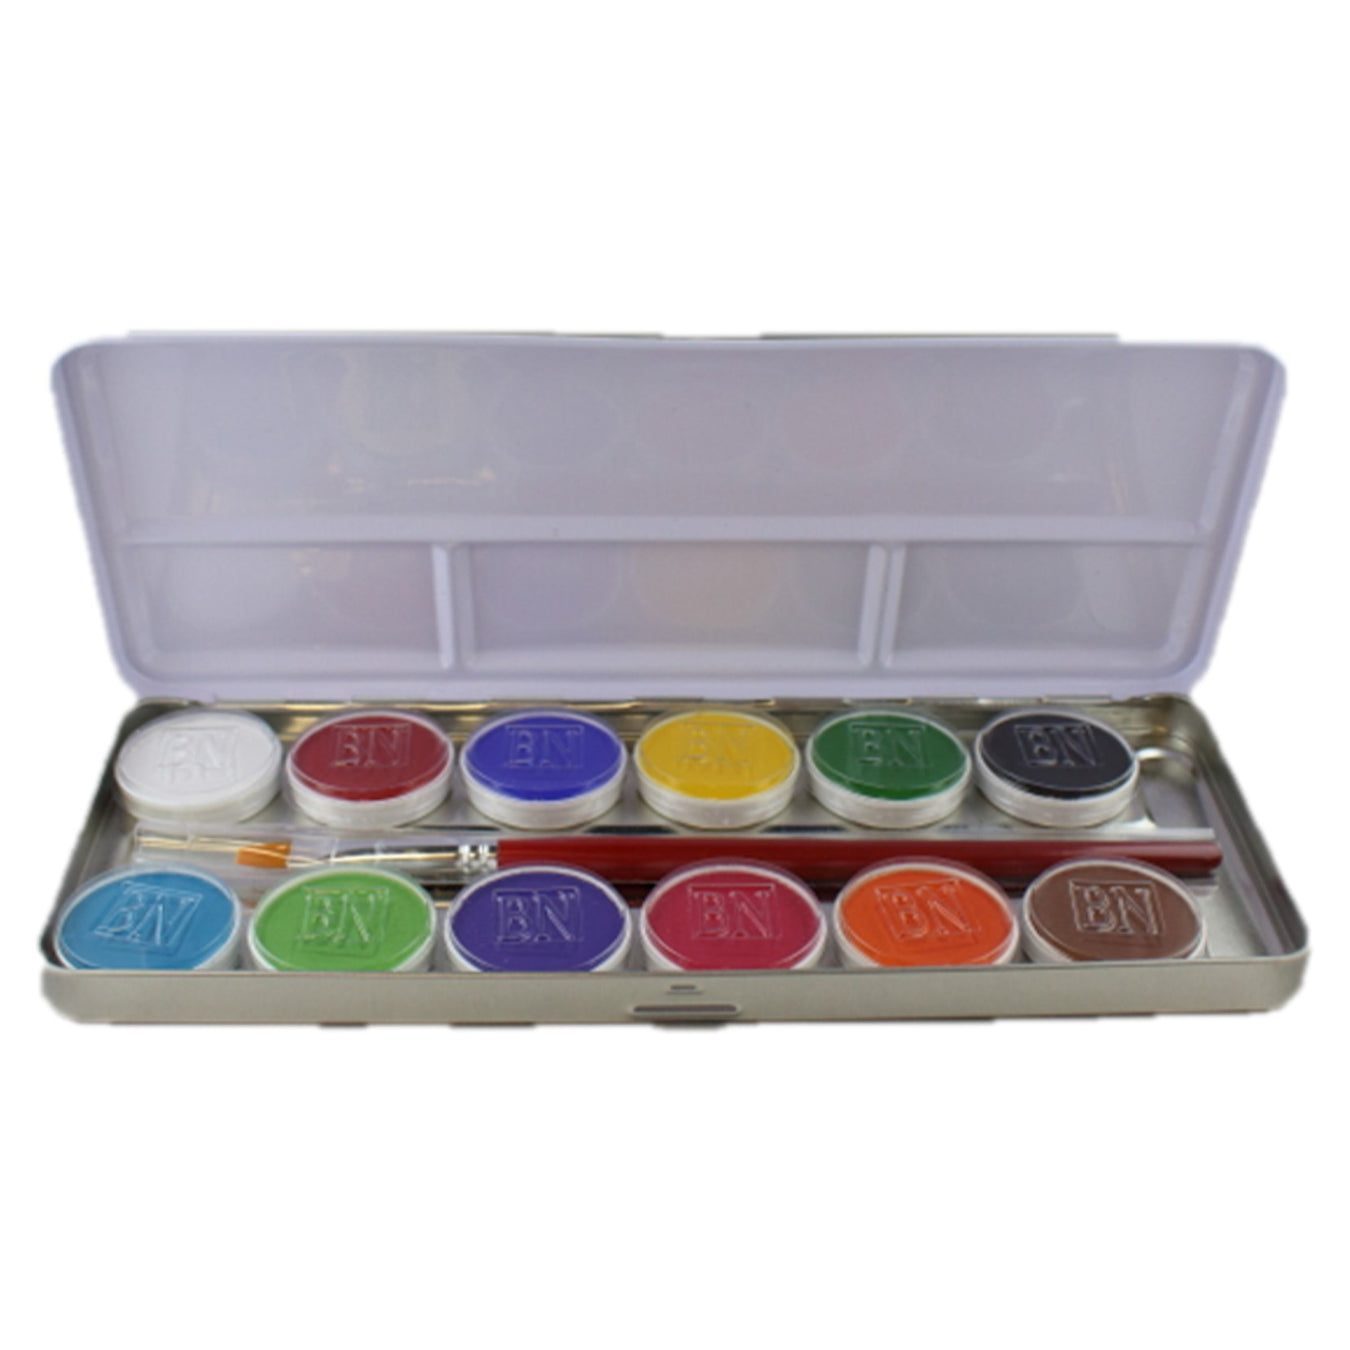 Ben Nye Face Painting Palettes